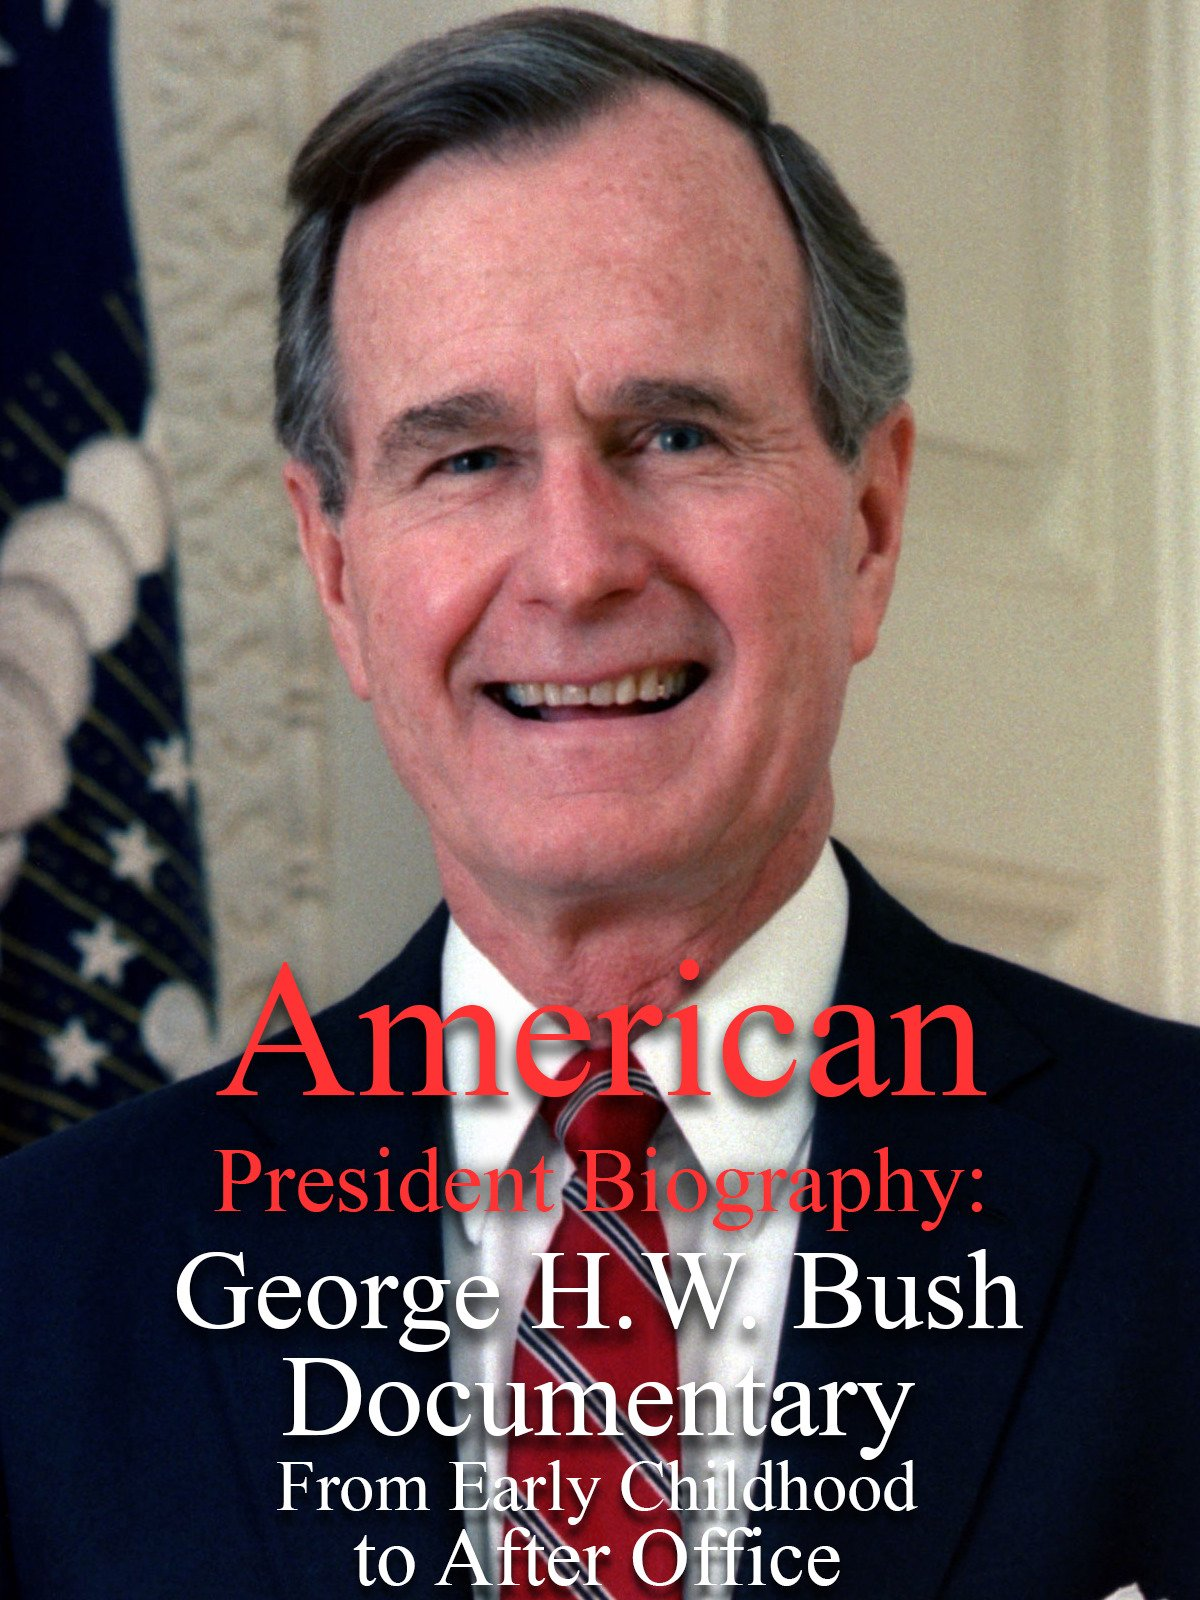 American President Biography: George H.W. Bush Documentary From Early Childhood to After Office